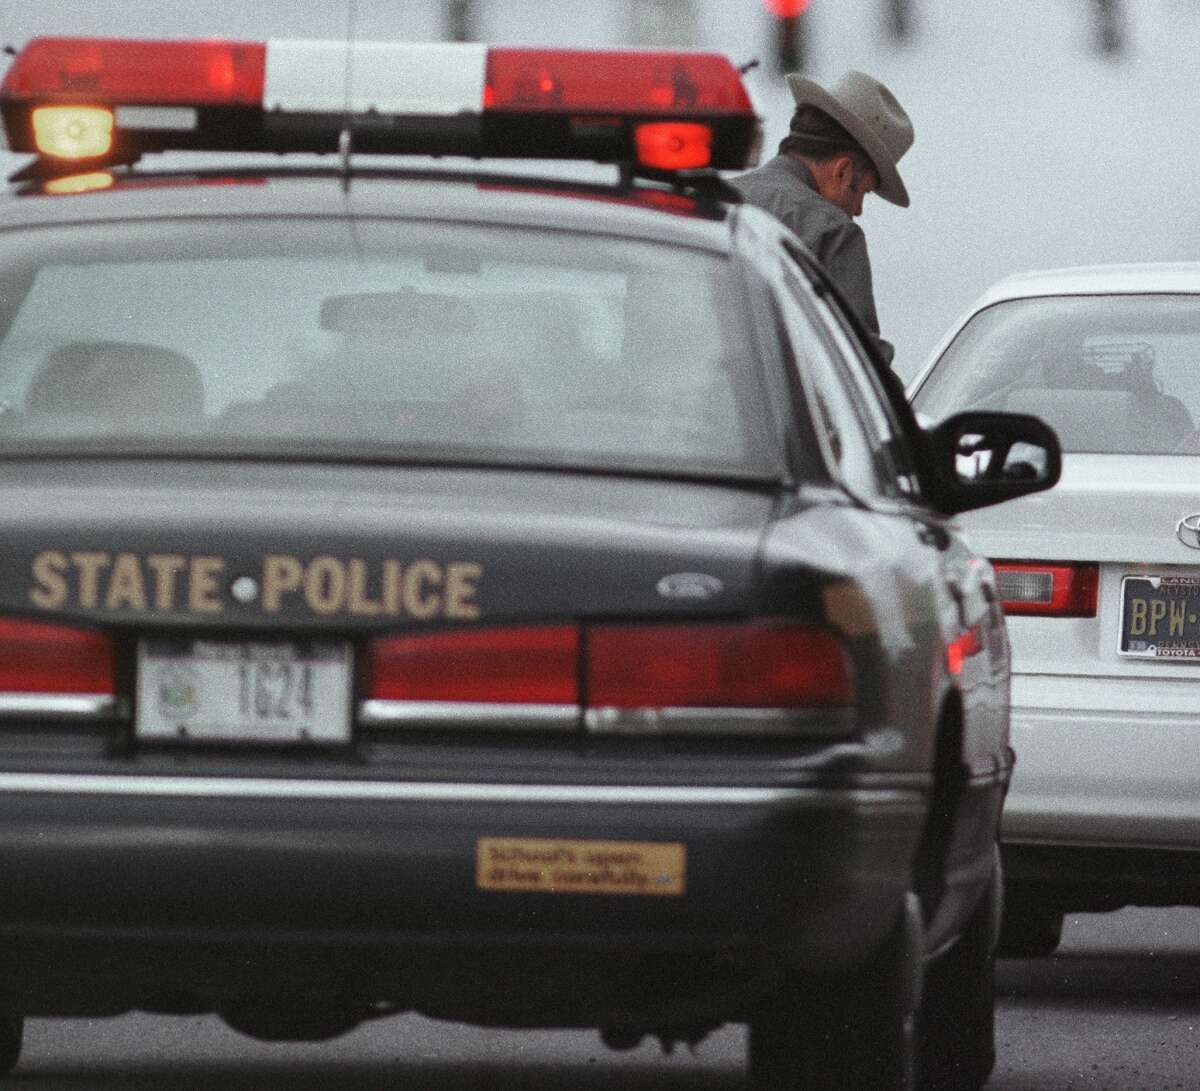 OCT. 29,1998 - LATHAM, NY -- TROOPER MIKE ANSON PREPARES TO ISSUE A TRAFFIC SUMMONS TO A DRIVER ON I87 DURING A BLANKET PATROL FOR AGGRESSIVE DRIVING, OTHERWISE KNOWN AS ROAD RAGE,